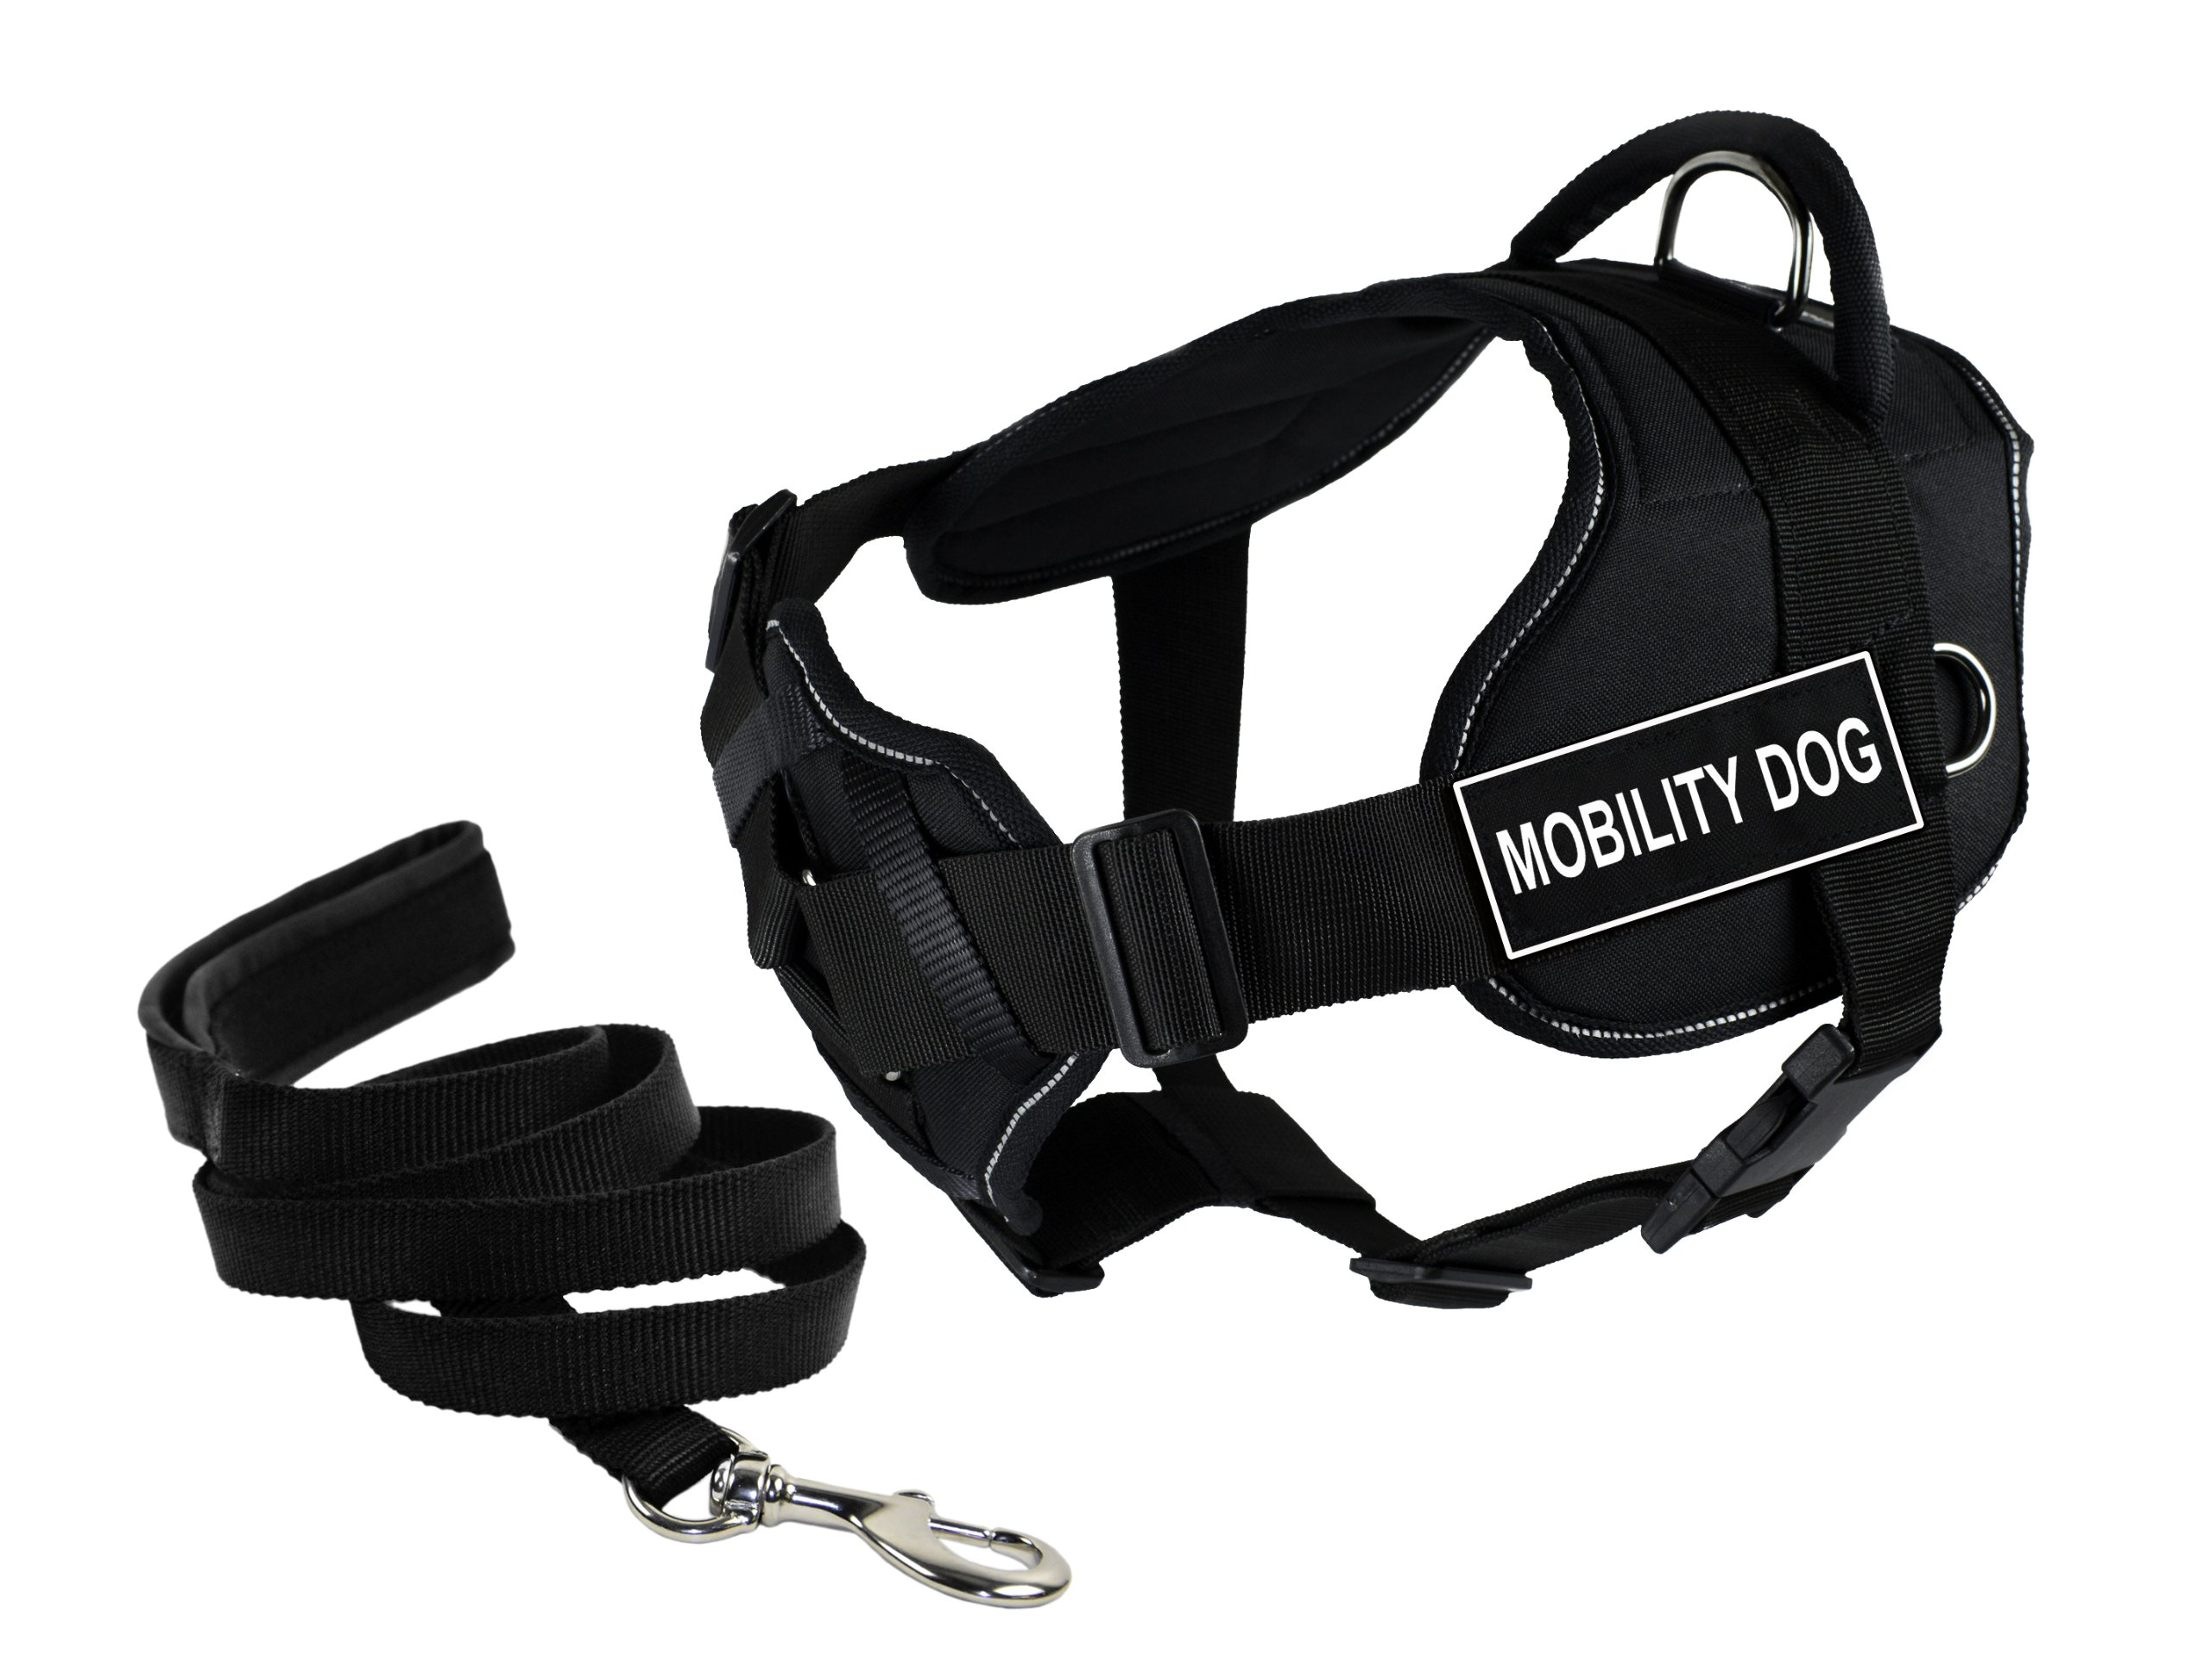 Dean & Tyler's DT Fun Chest Support ''MOBILITY DOG'' Harness with Reflective Trim, X-Large, and 6 ft Padded Puppy Leash.